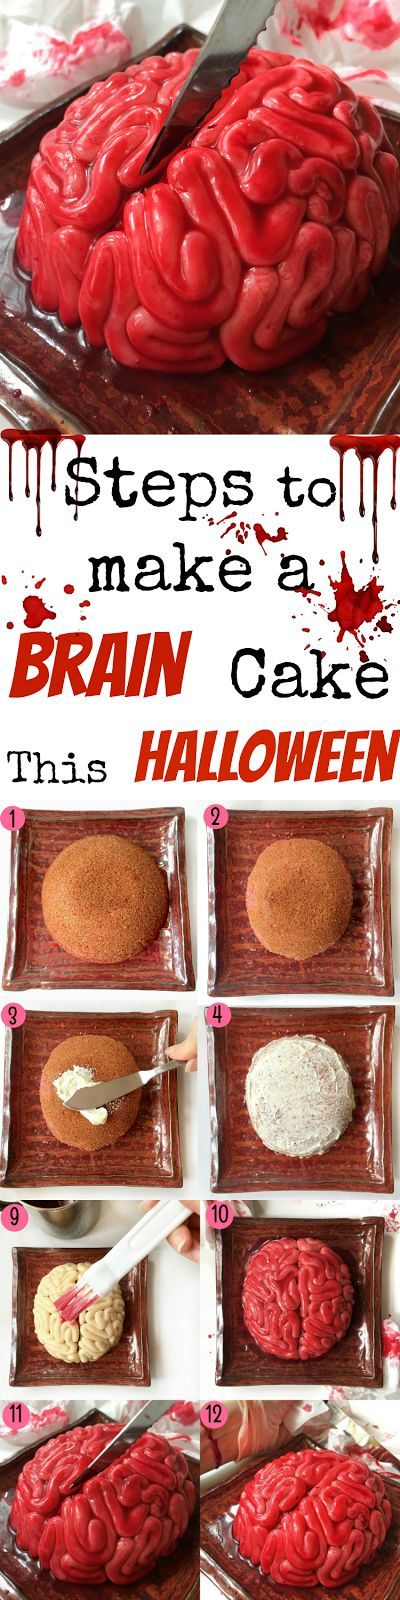 Halloween is just round the corner. Have you thought of your trick or treat surprise dessert? If not I have one idea that might scare ...